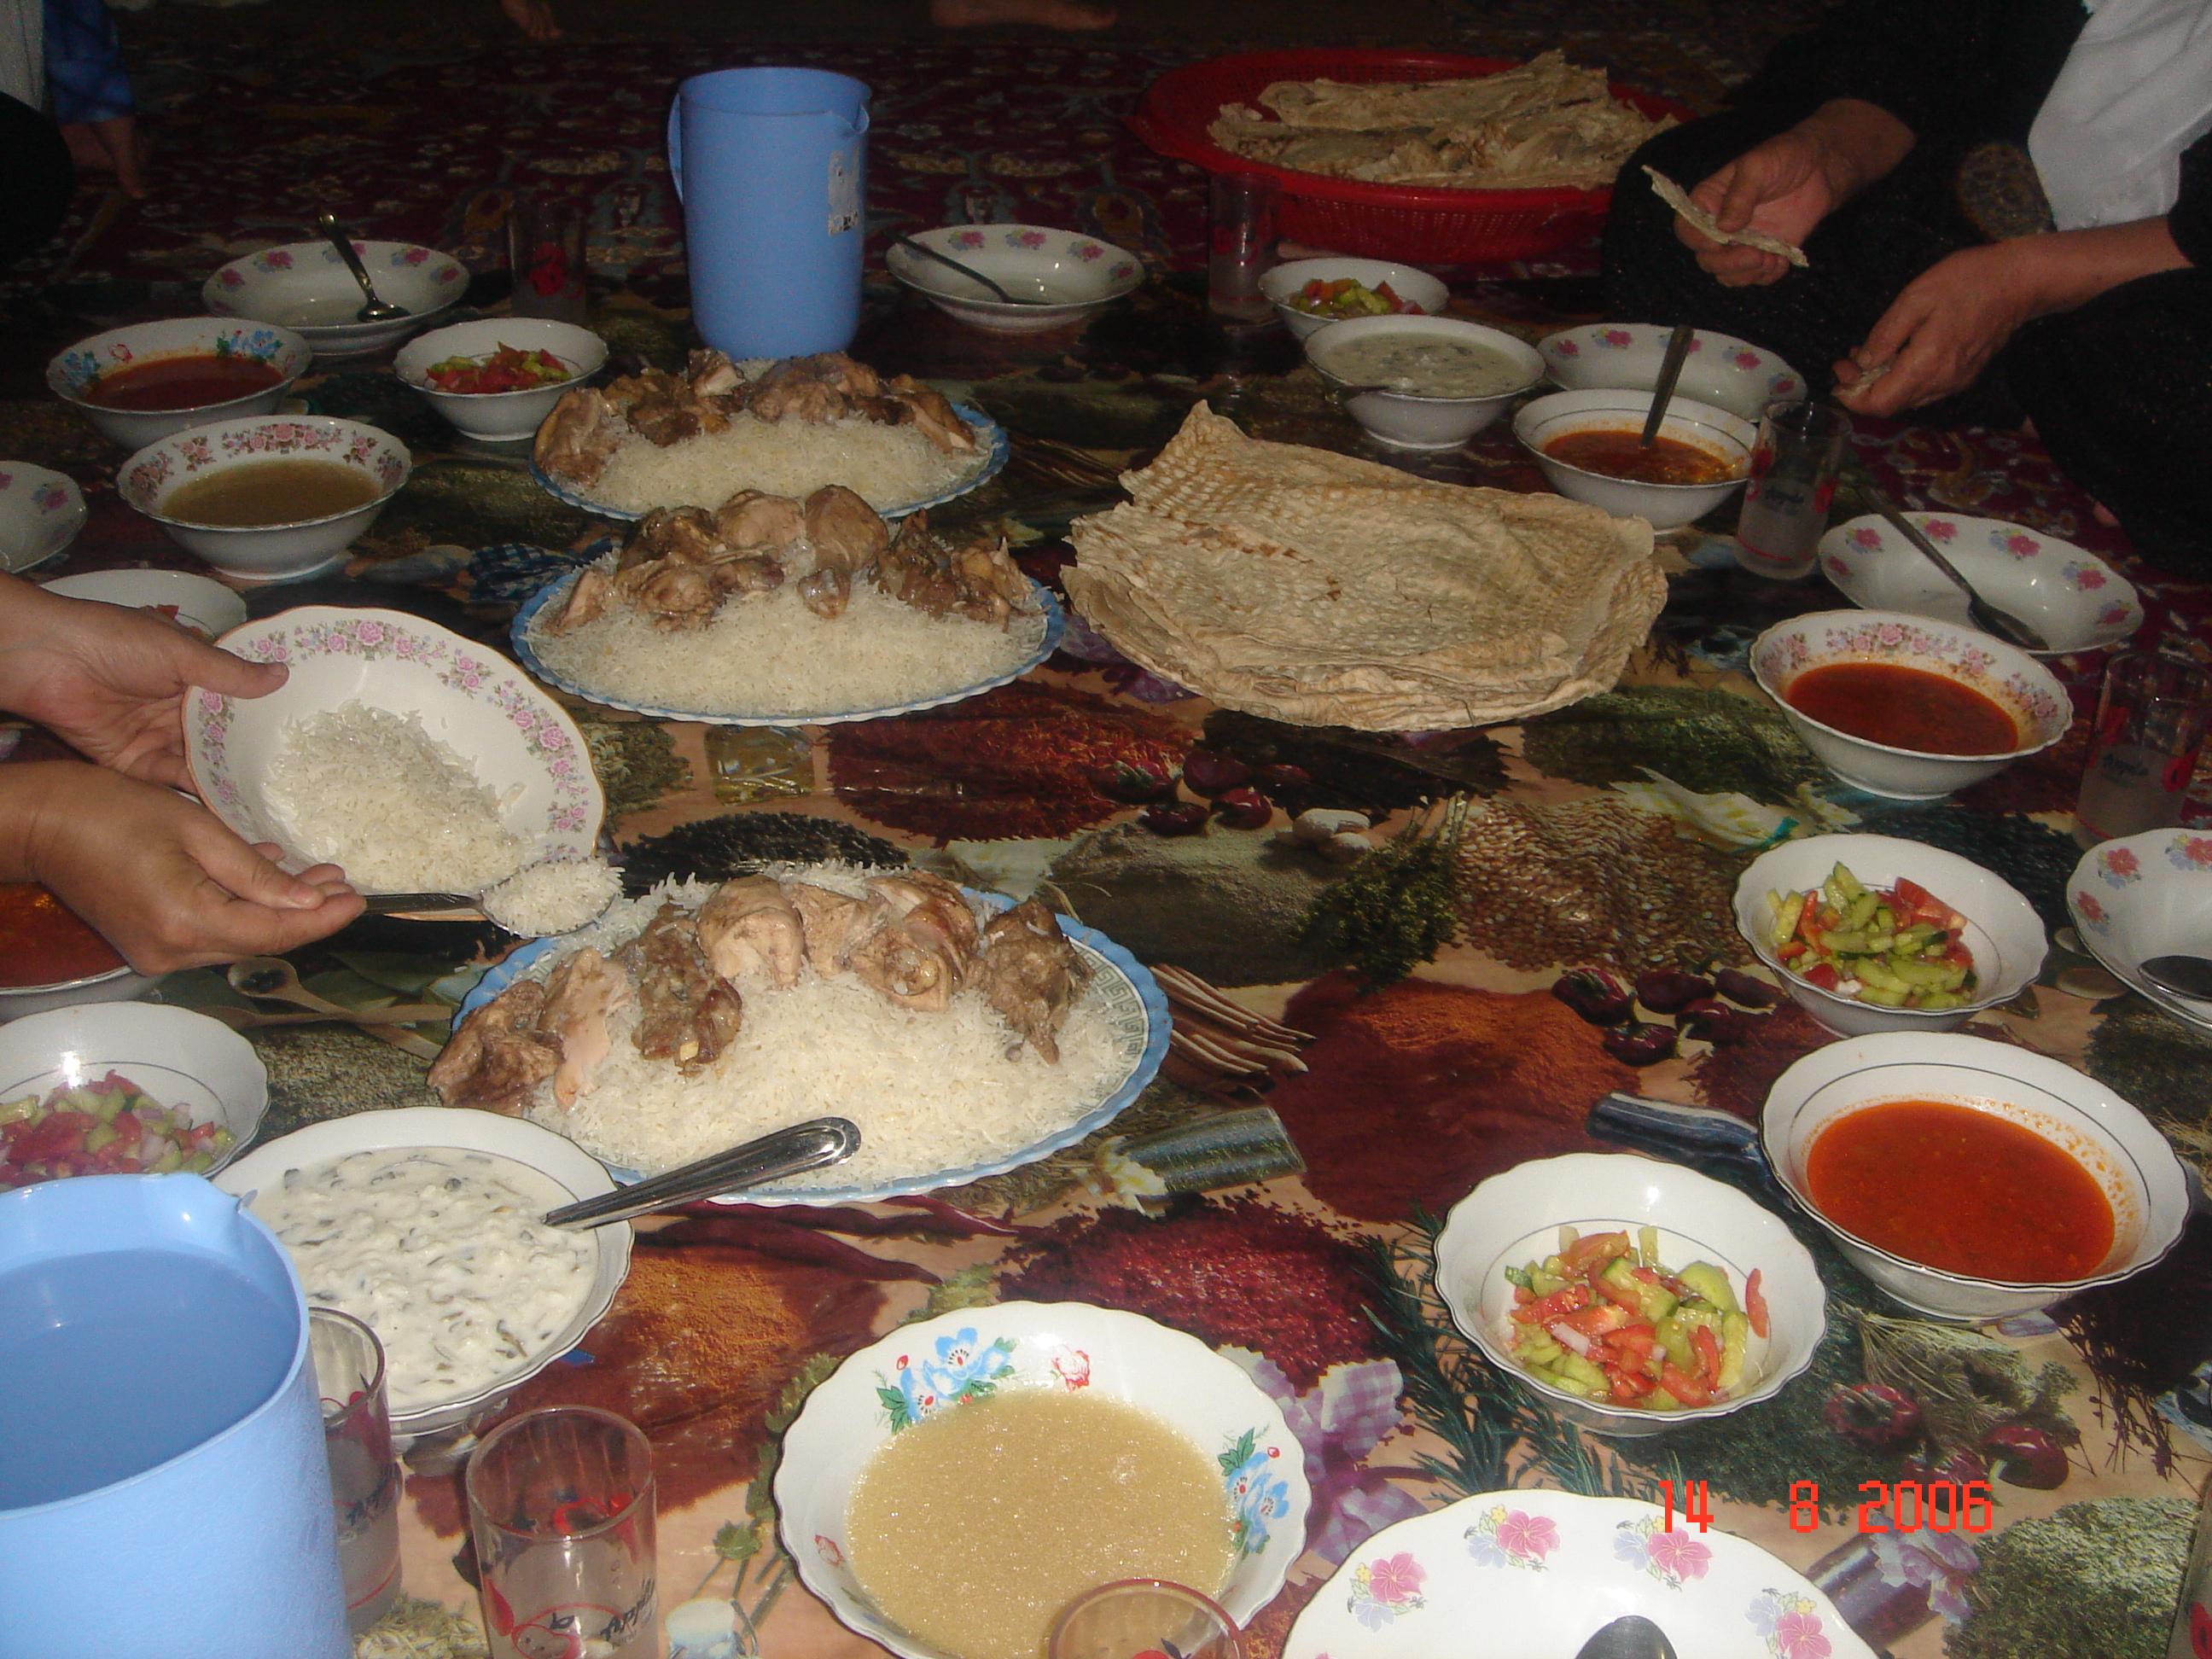 Description iraqi cuisine dinner 01